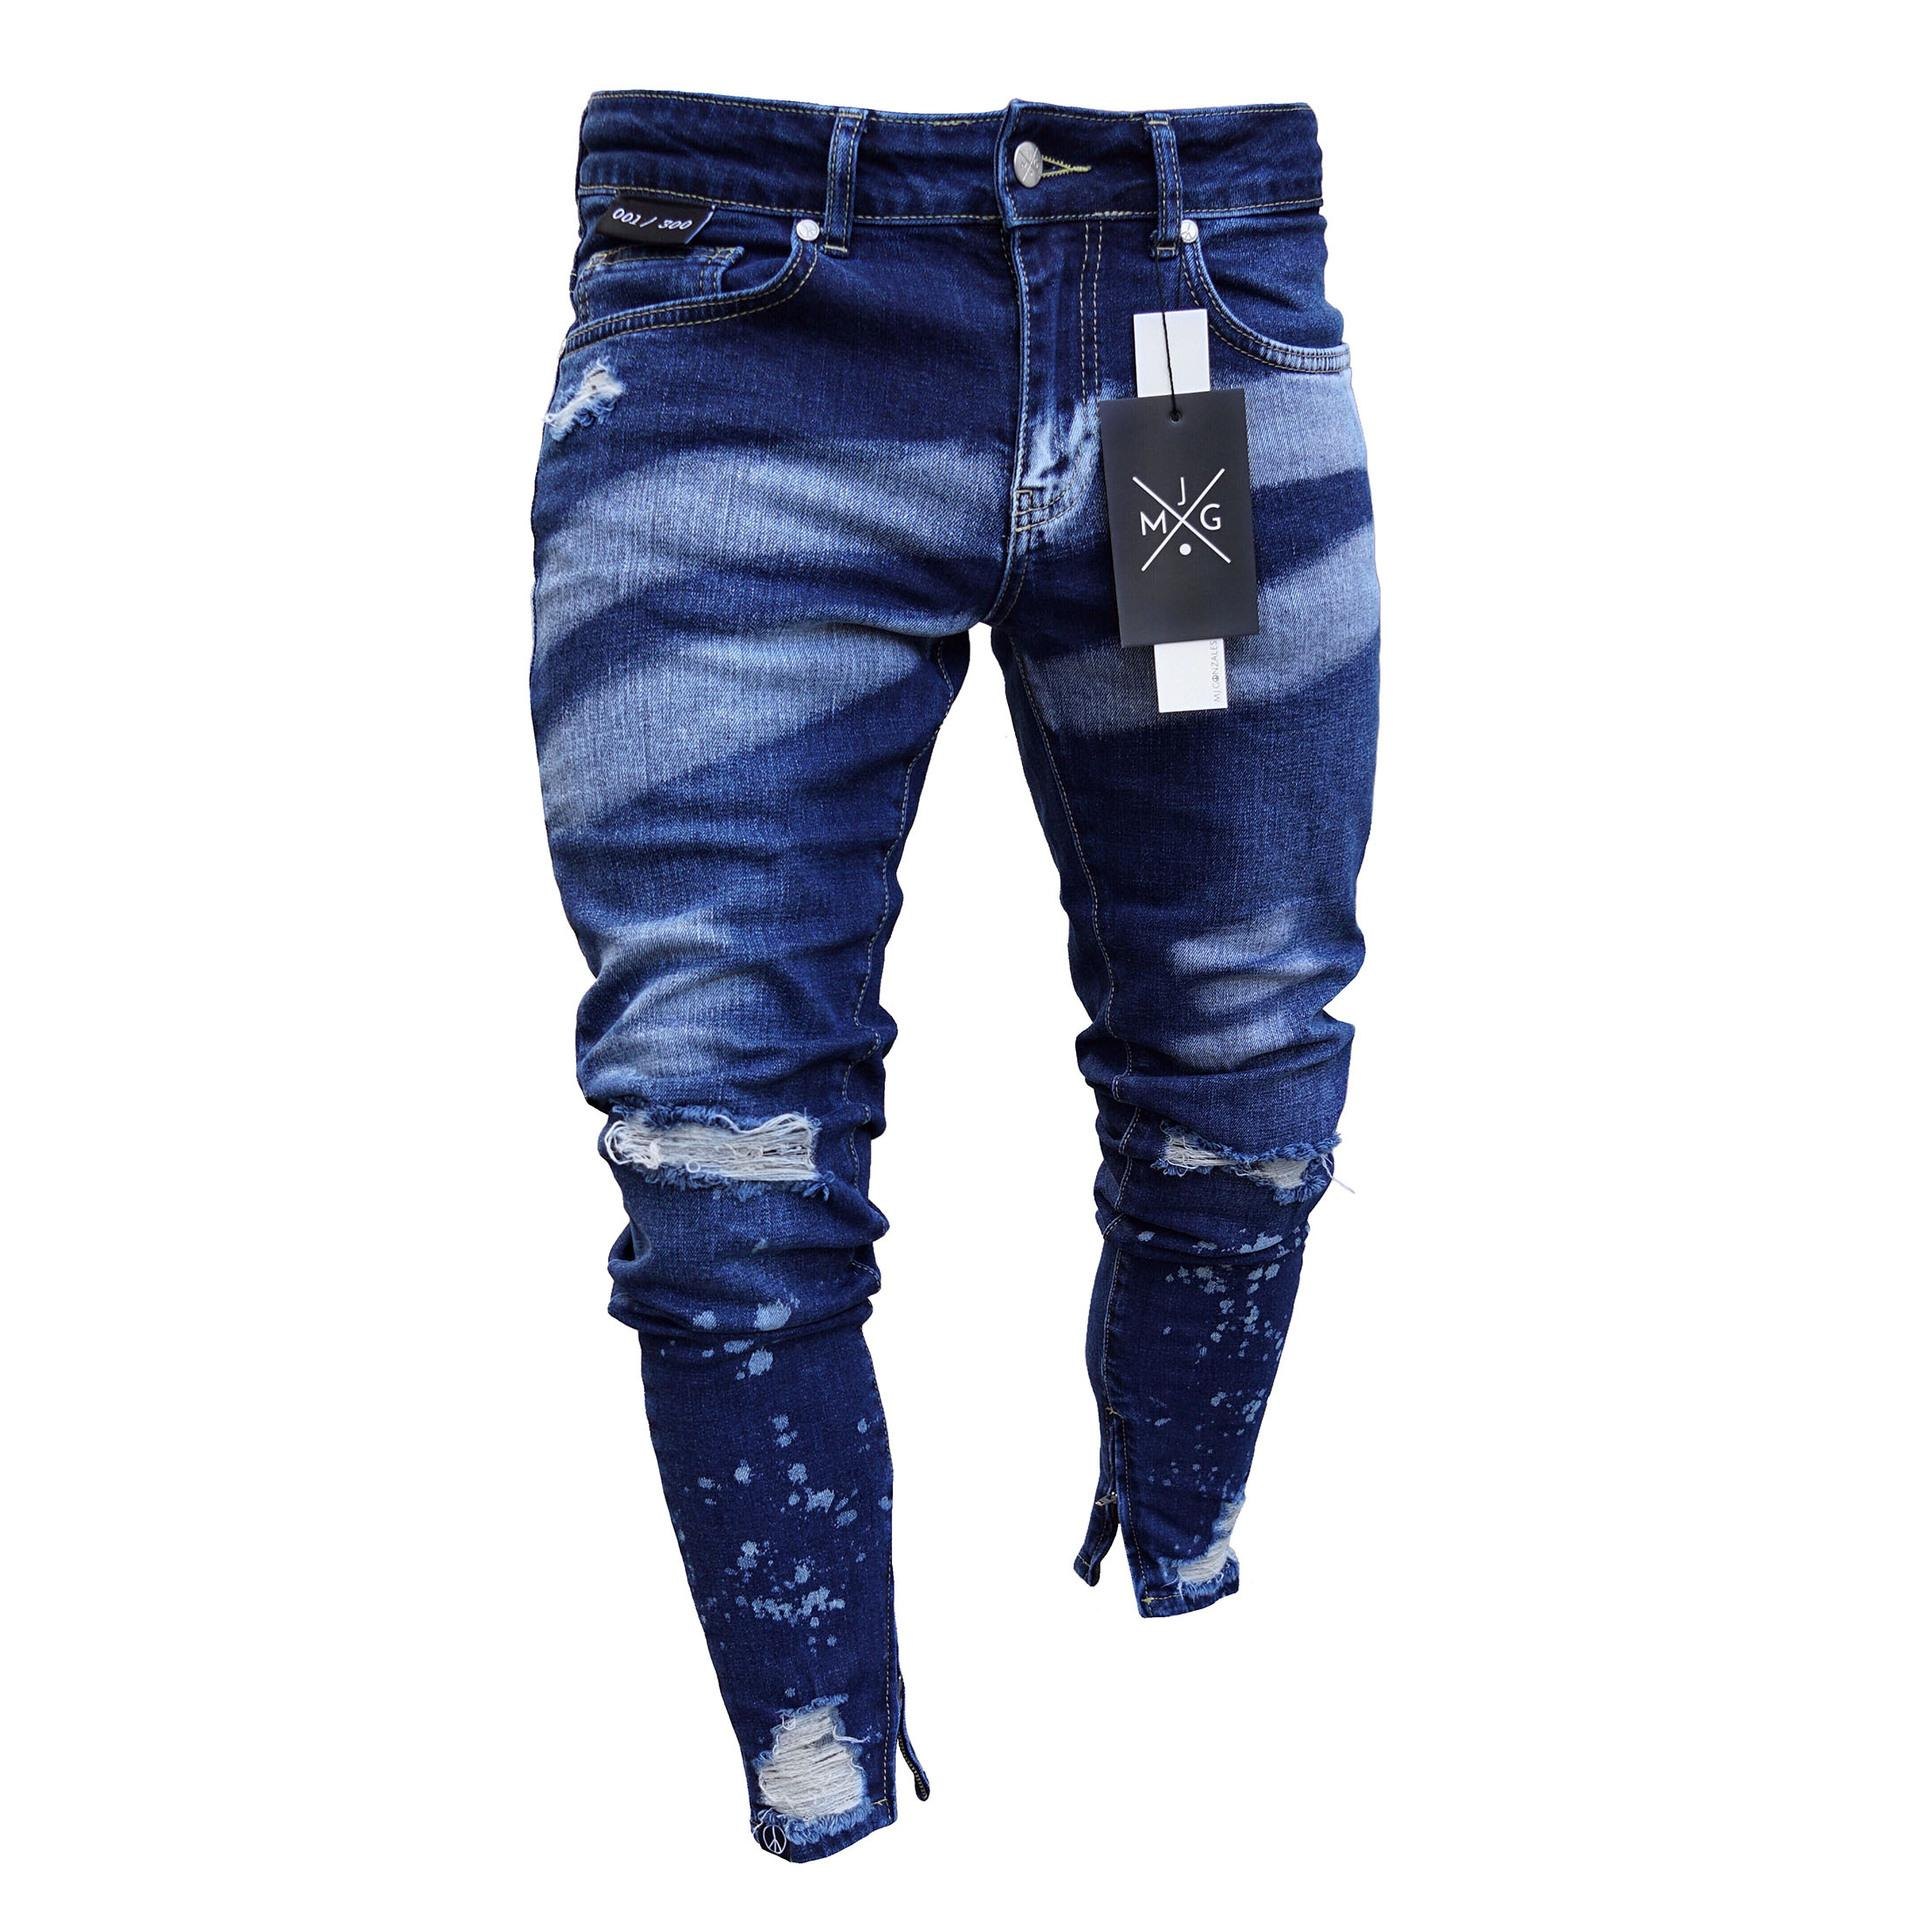 7cb289e4005 Acheter Bleu Délavé Jeans Vêtements Vêtements Gradient Crayon Jean Pantalon  Long Slim Fit Zipper Biker Jeans De  43.32 Du Sunflower111